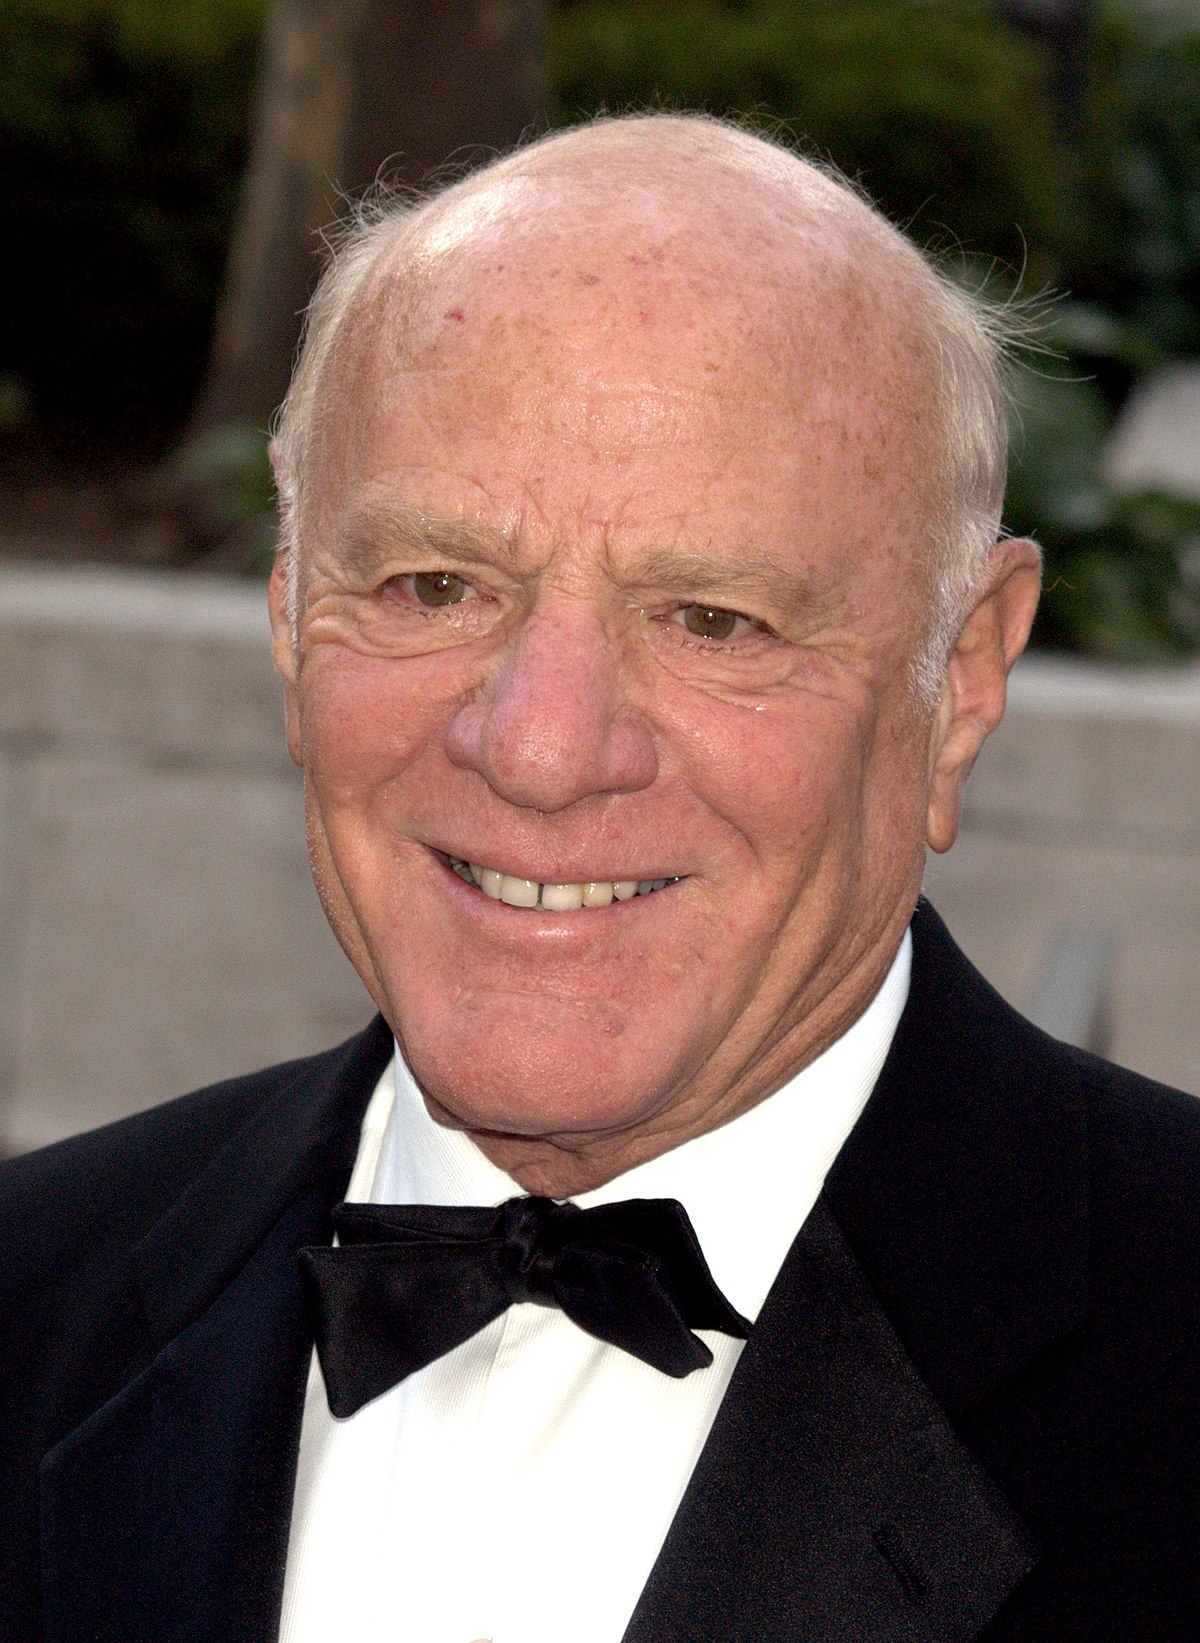 Barry Diller Wikipedia